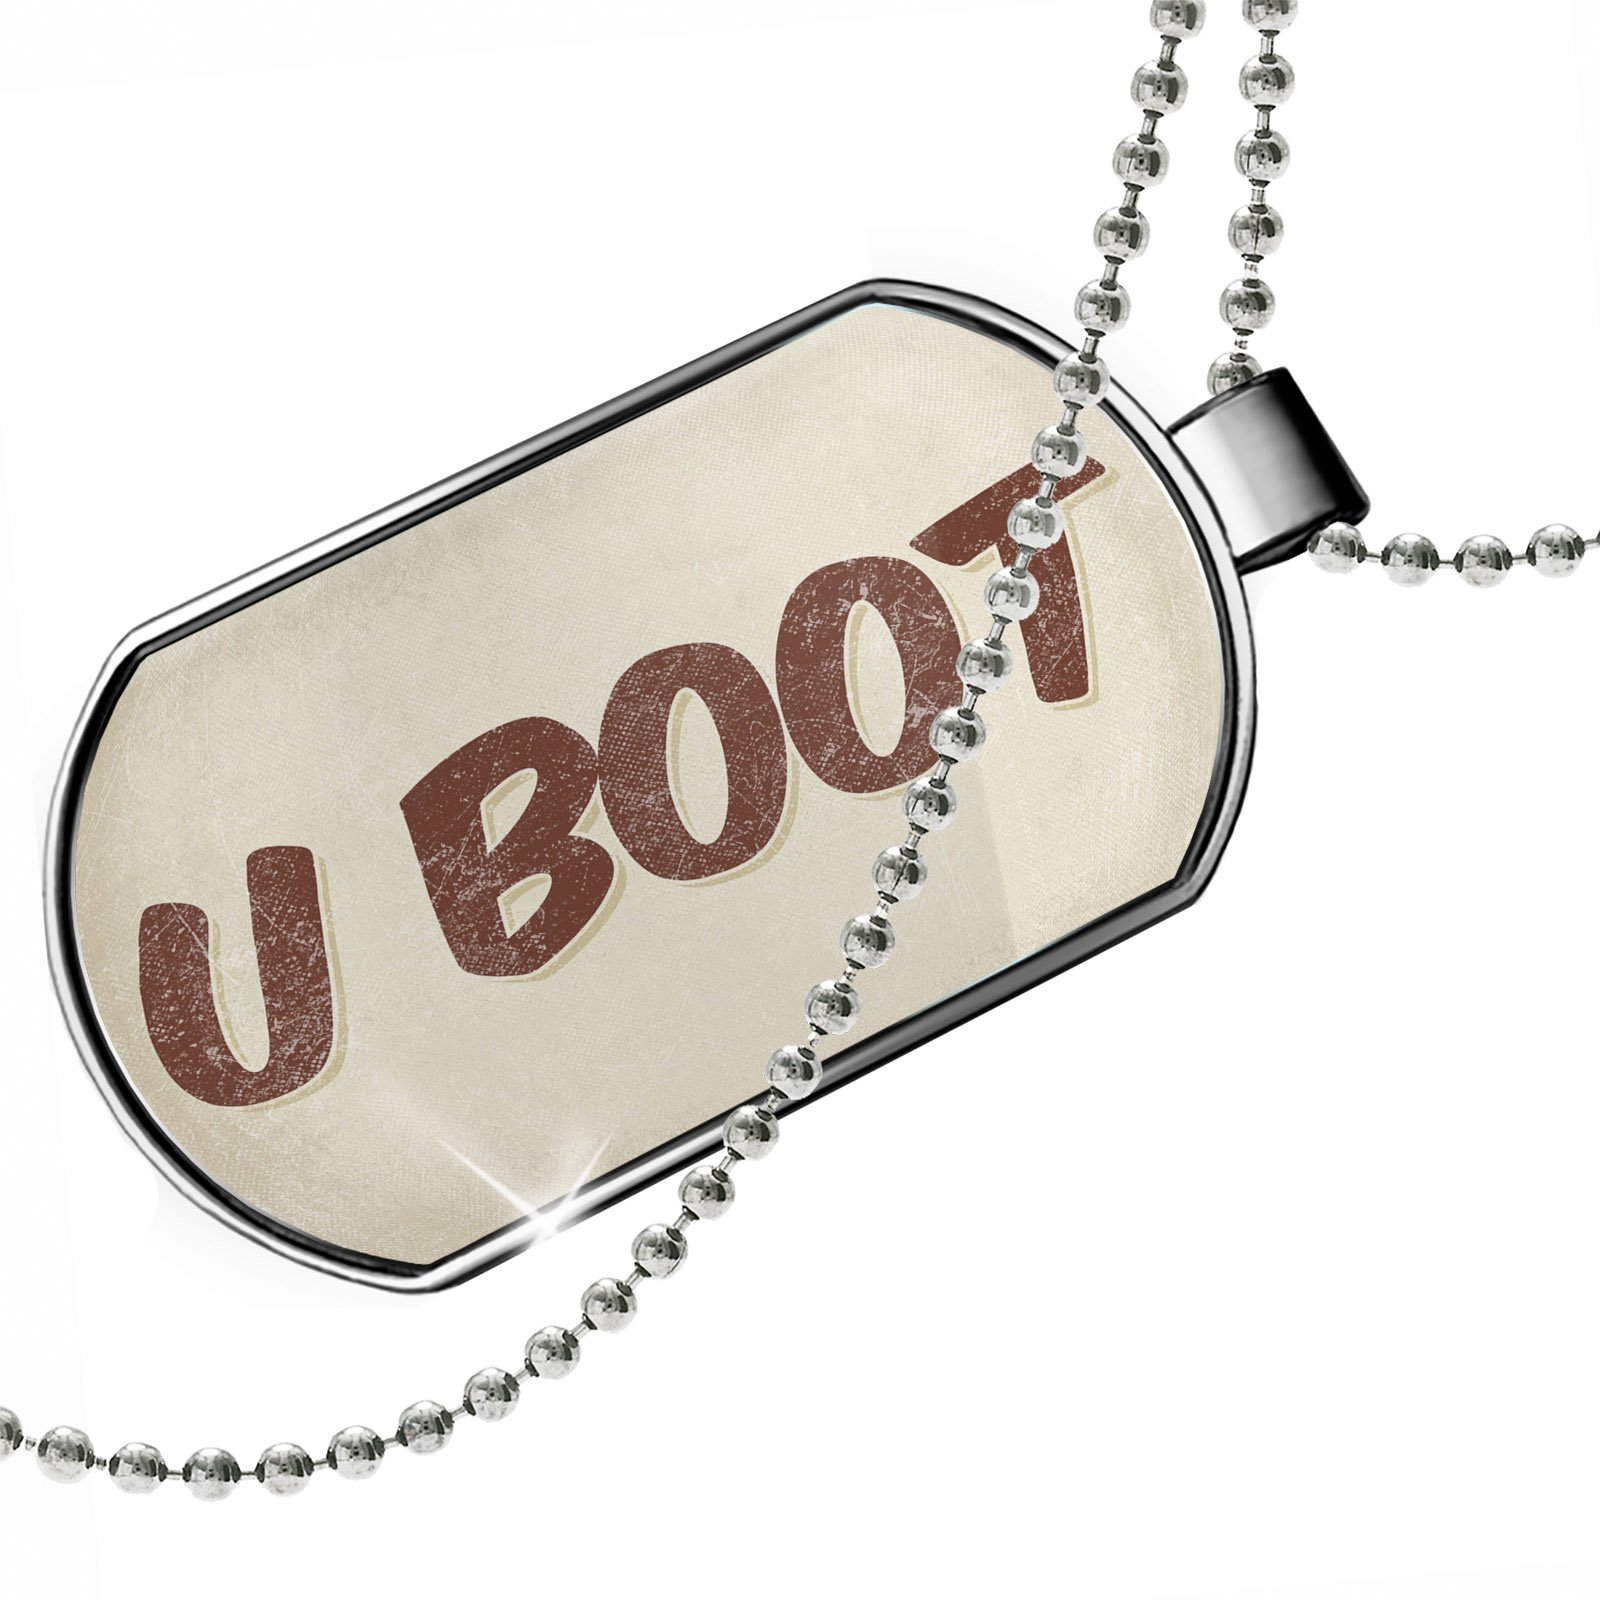 Dogtag U Boot Cocktail, Vintage style Dog tags necklace - Neonblond